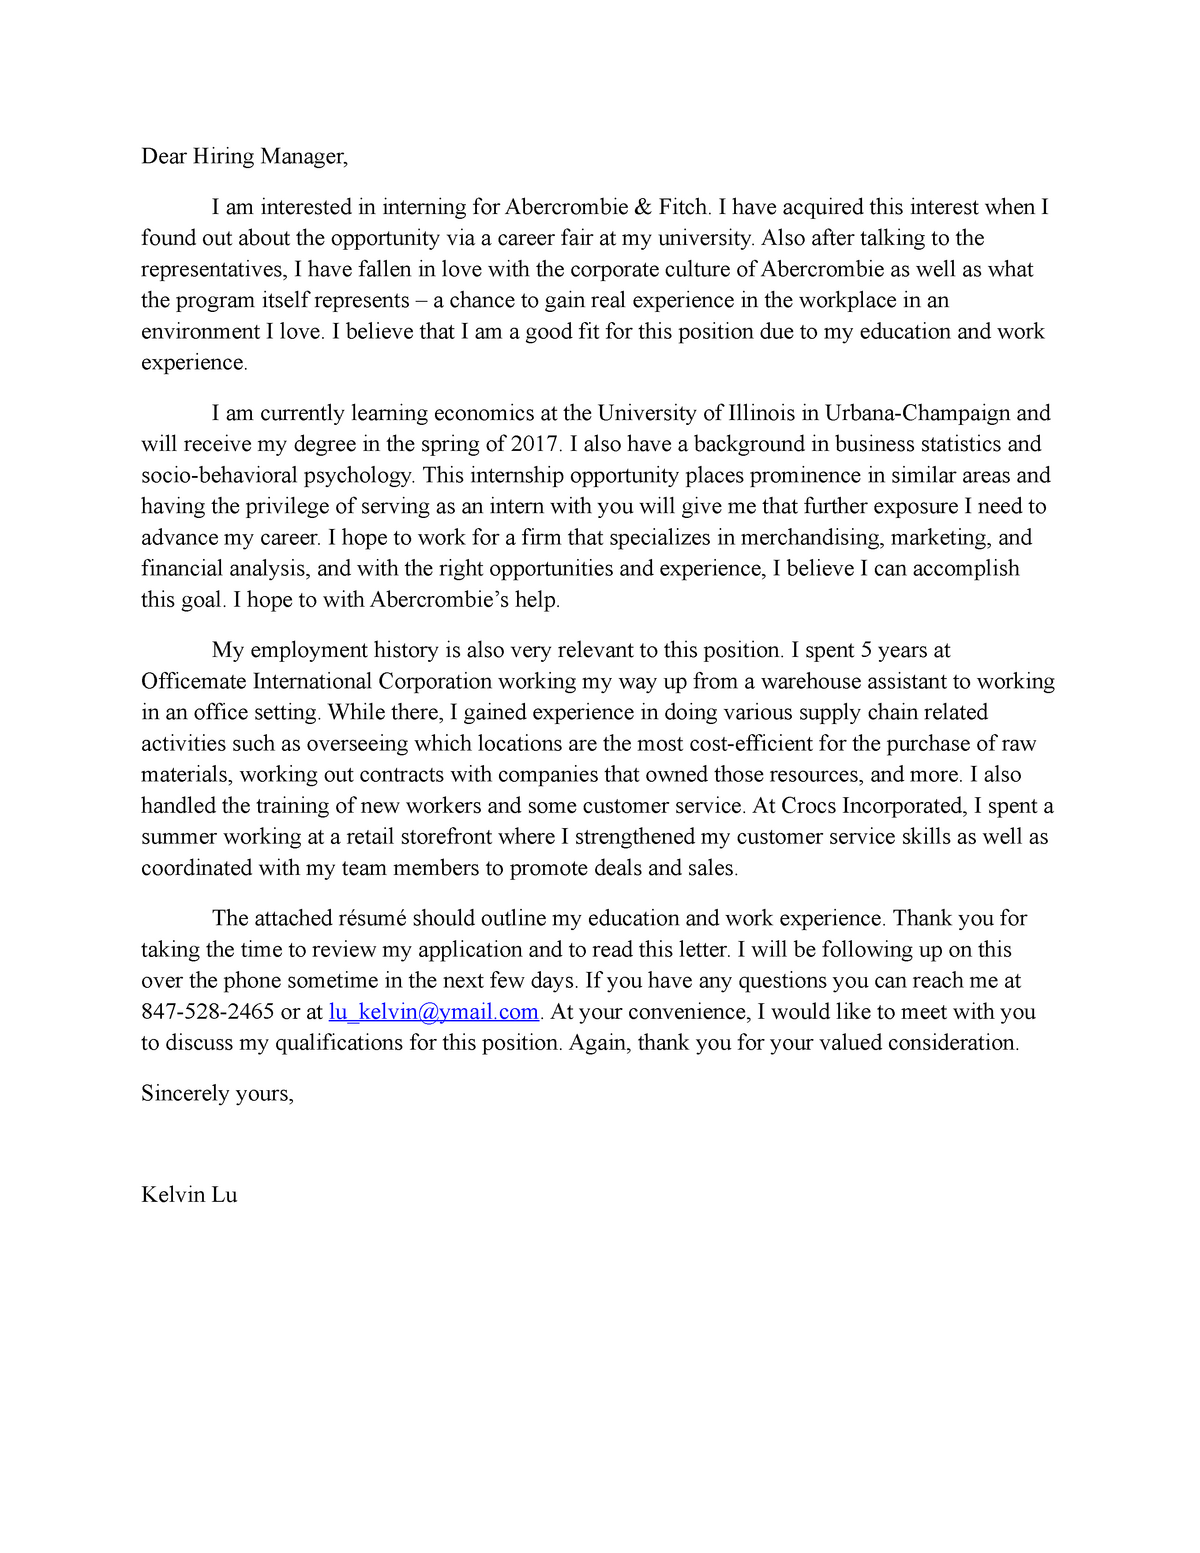 Cover Letter for Abercrombie final - BTW 250 - Illinois ...